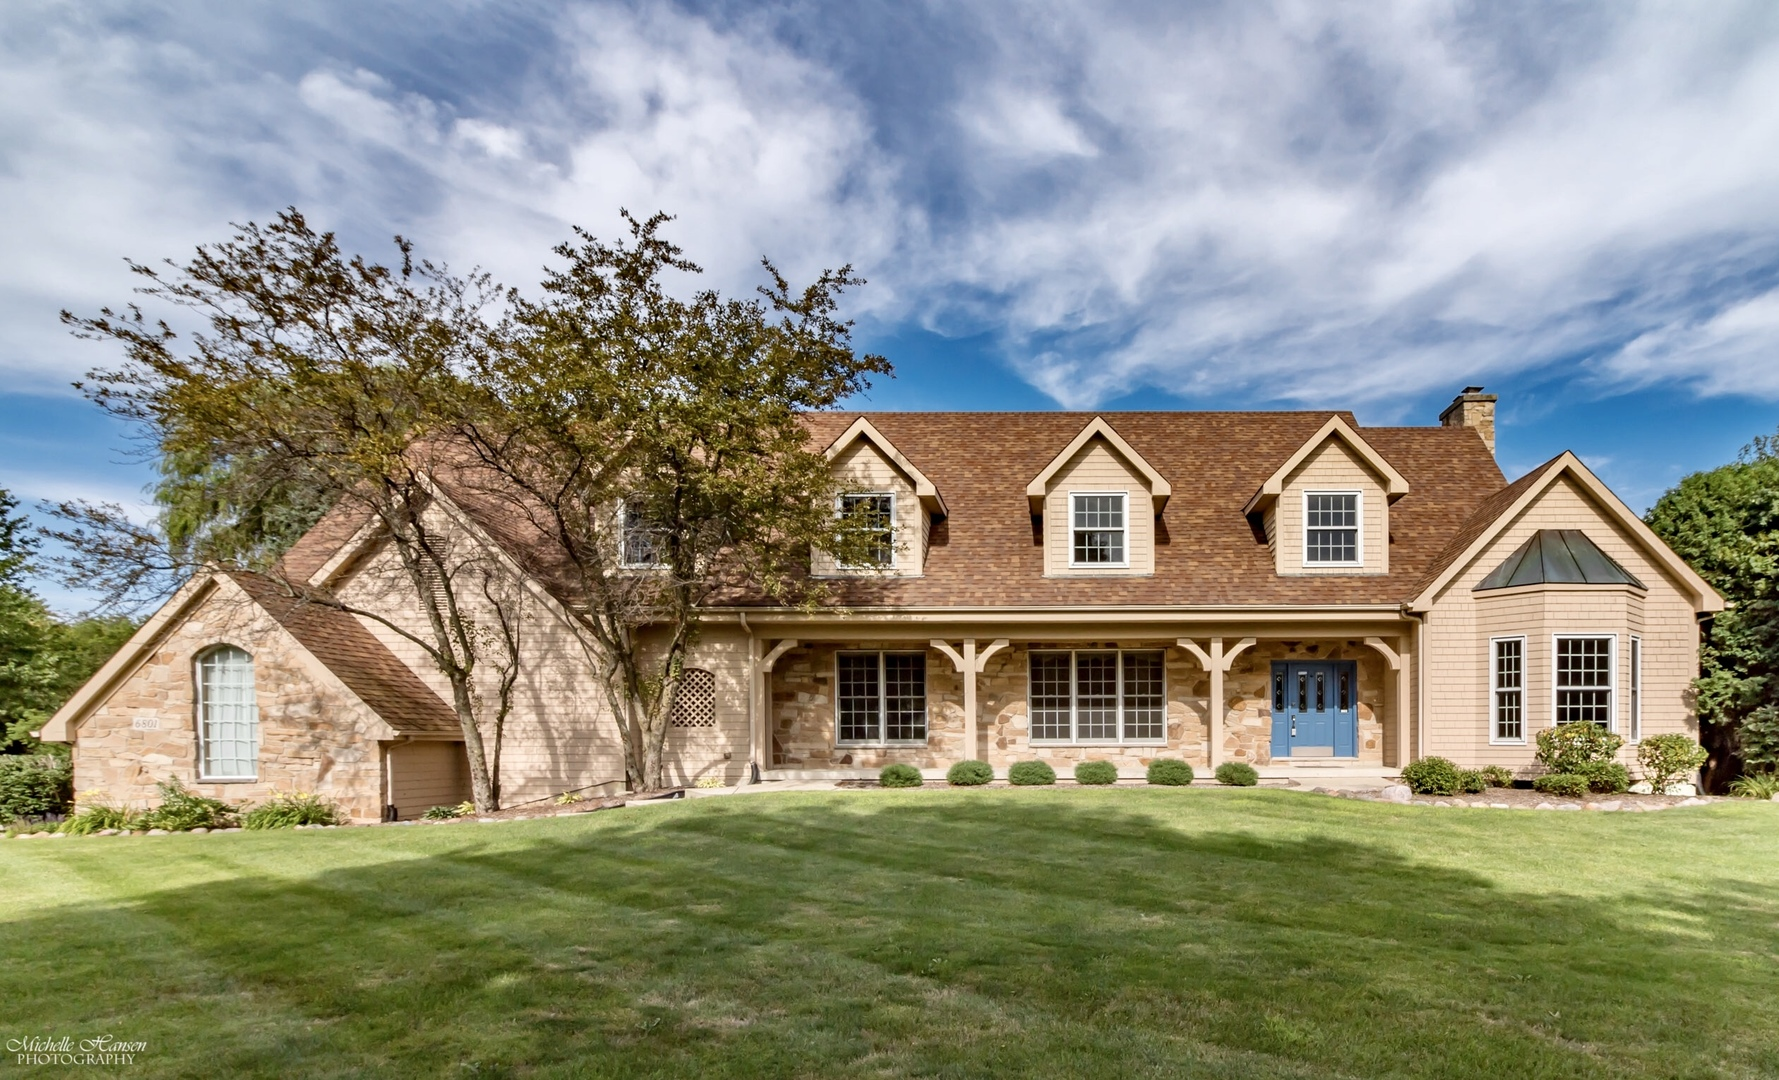 6801 Colonel Holcomb Drive, Crystal Lake, IL 60012